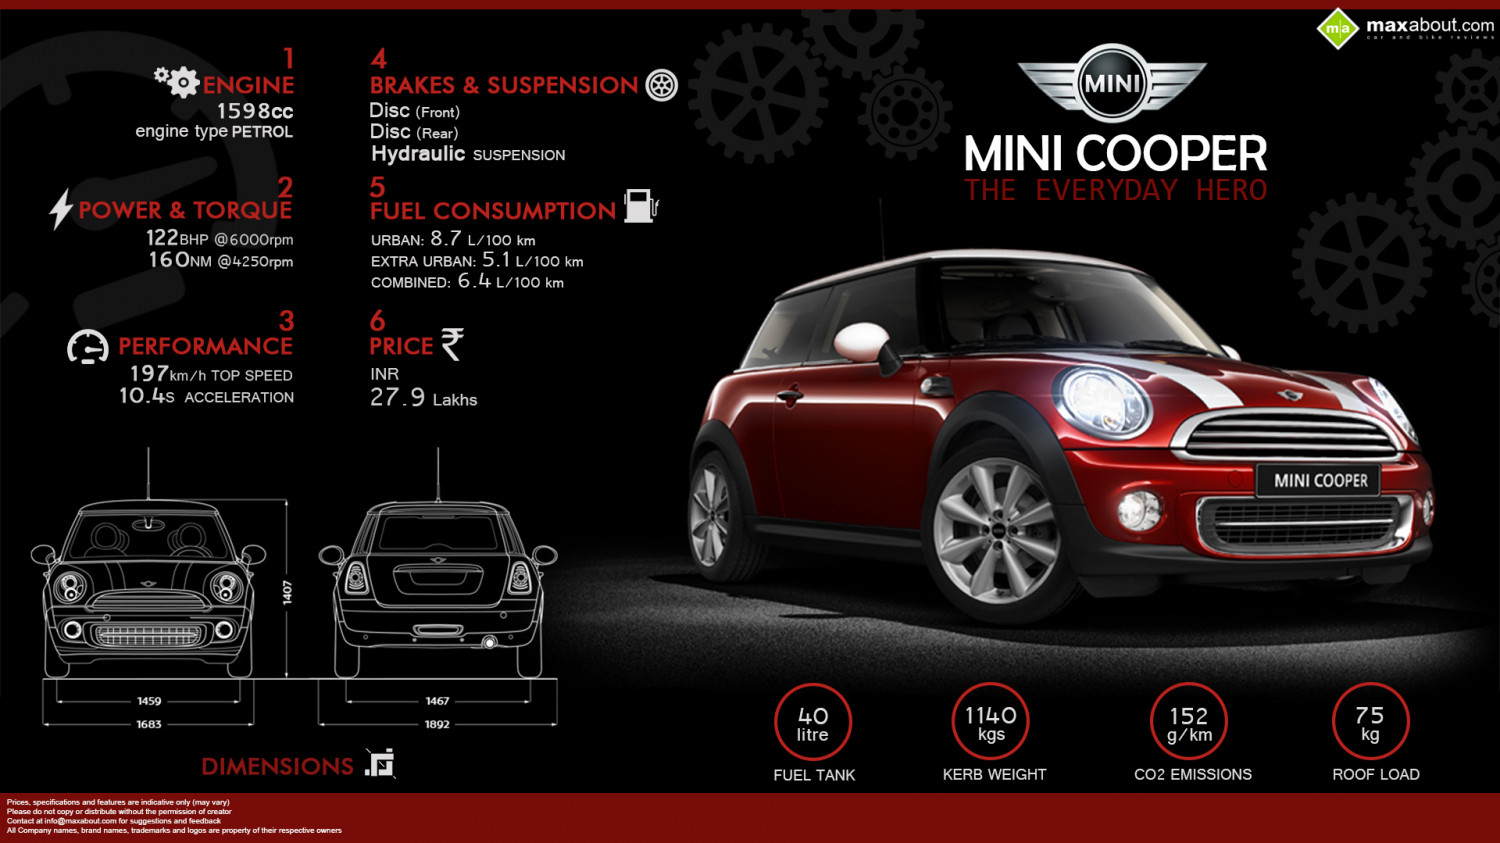 Mini Cooper - The Everyday Hero Infographic